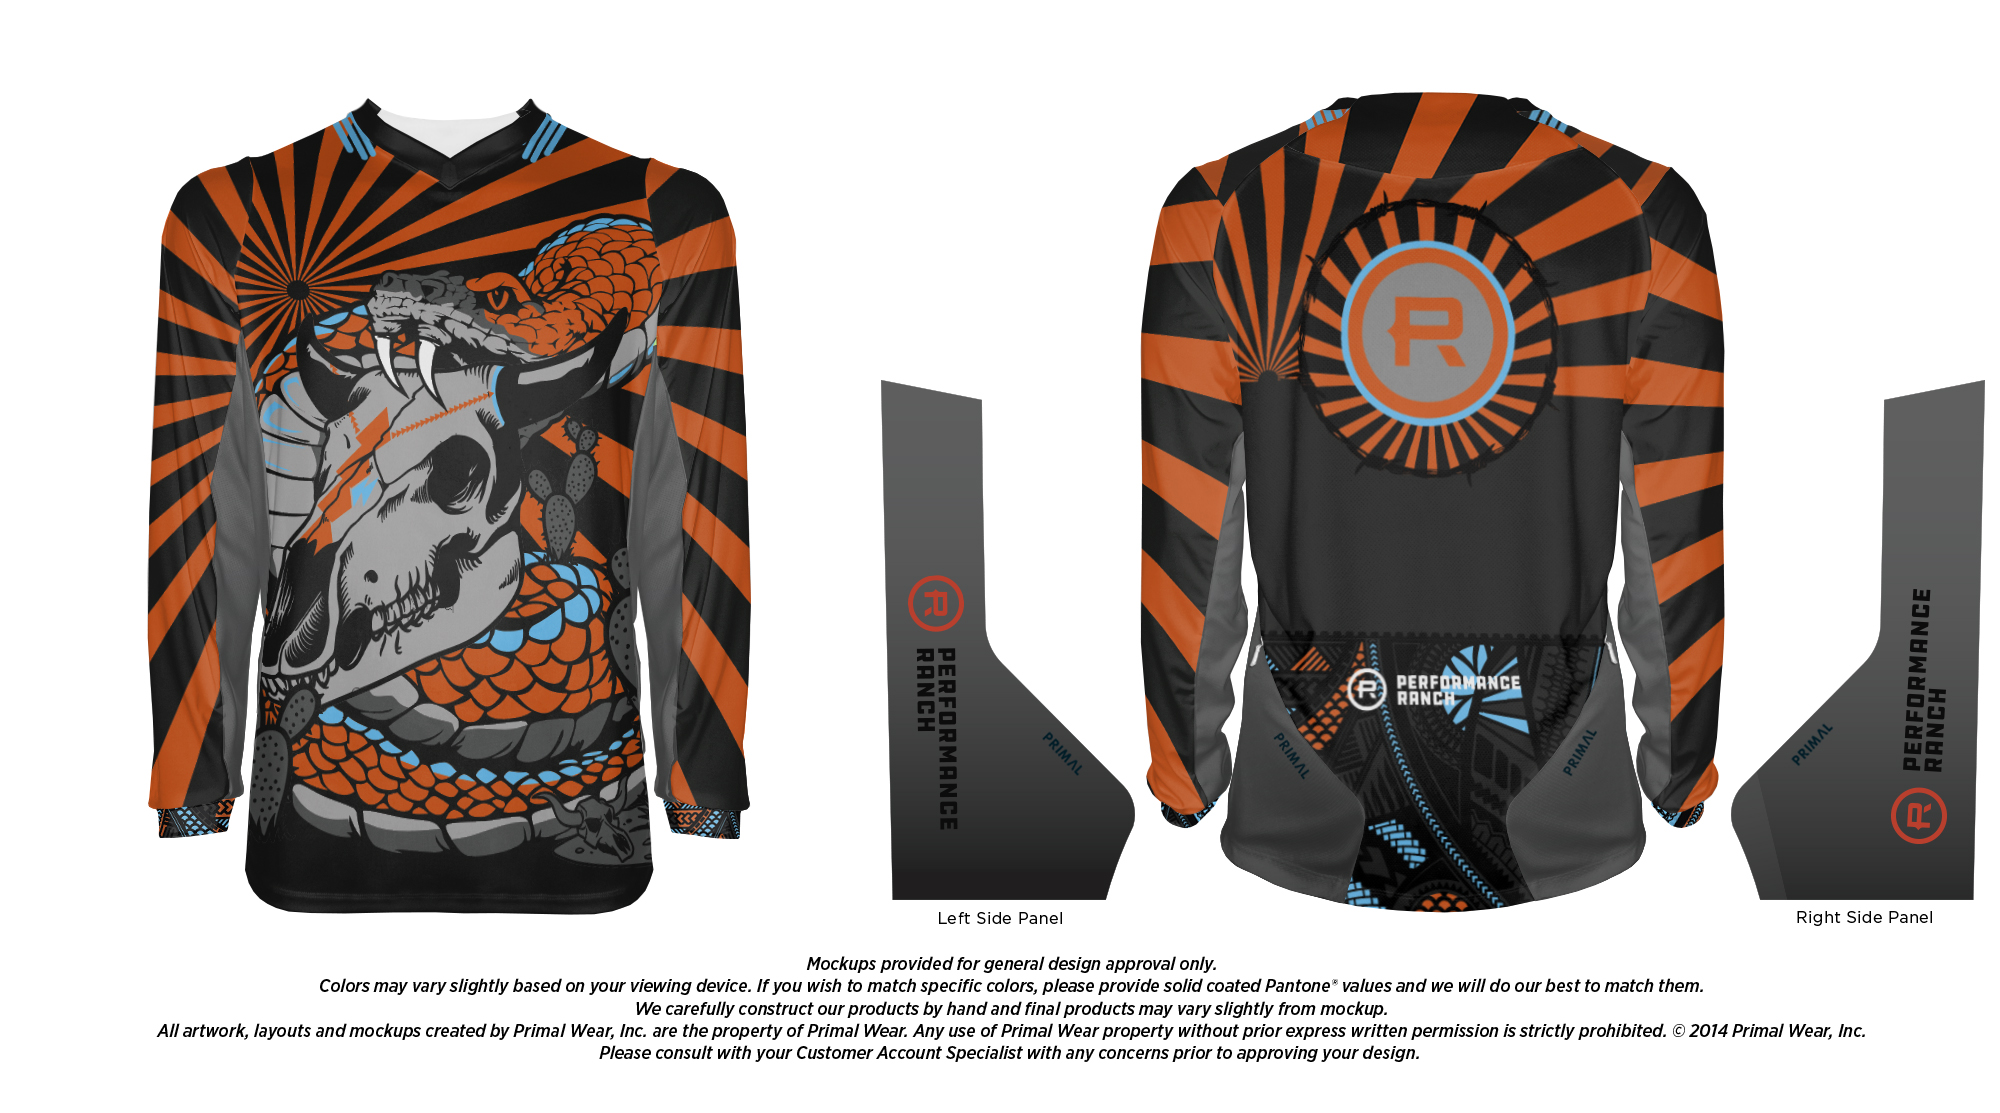 MTB Long Sleeve Jersey   Click Here  to Pre-Order - $70